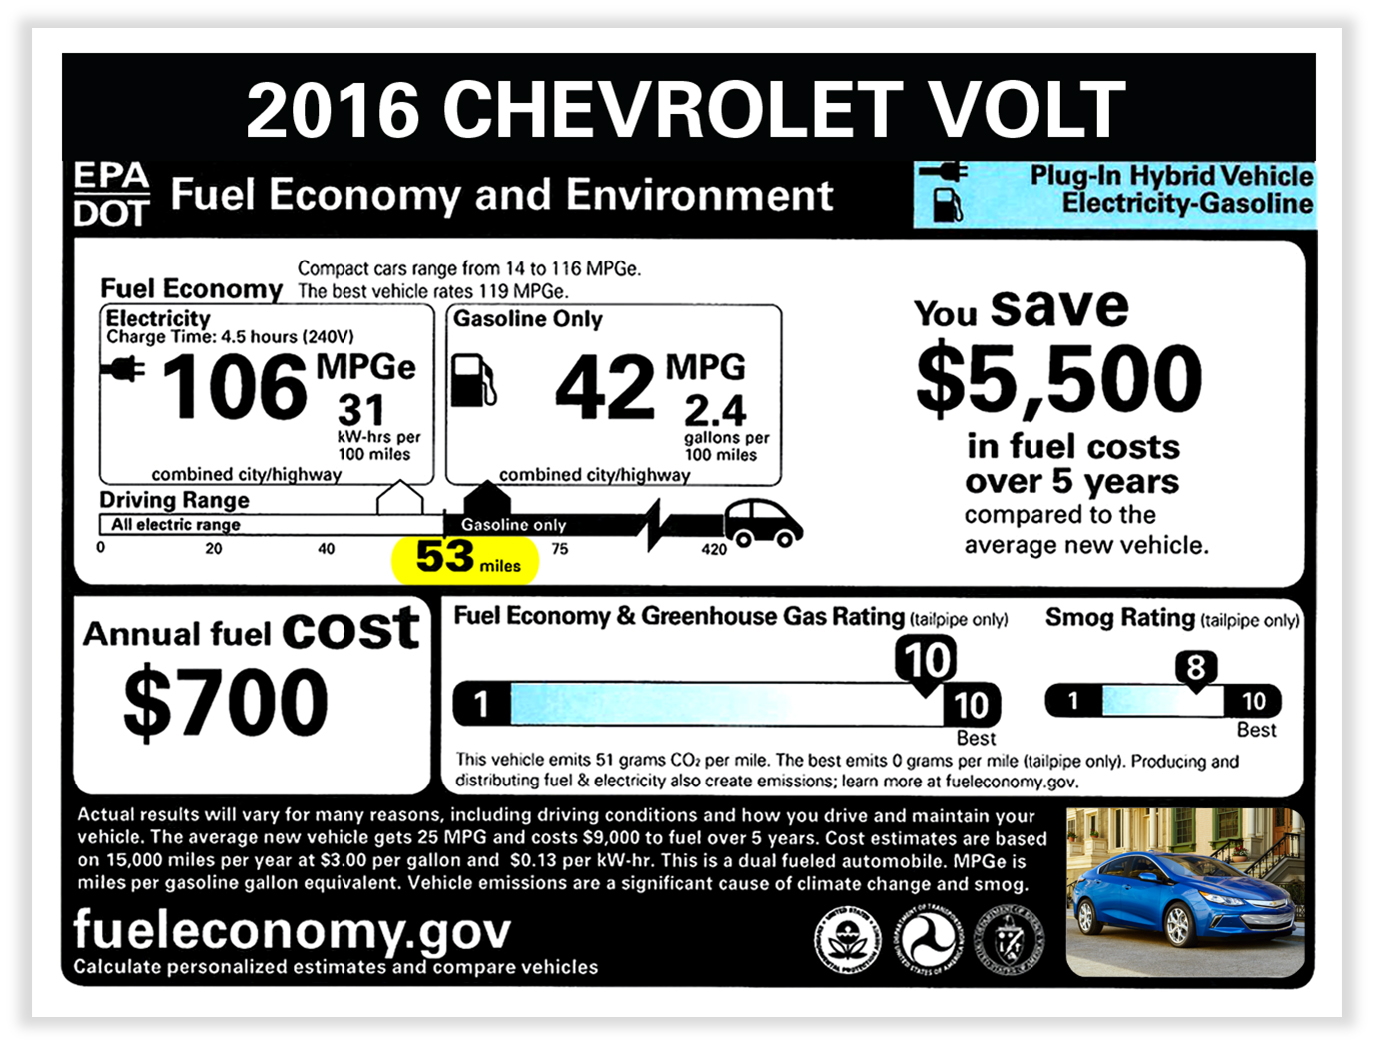 The 2016 Chevrolet Volt can run on pure electricity for 53 miles on a single charge, nearly 40 percent more than the first-generation Volt.